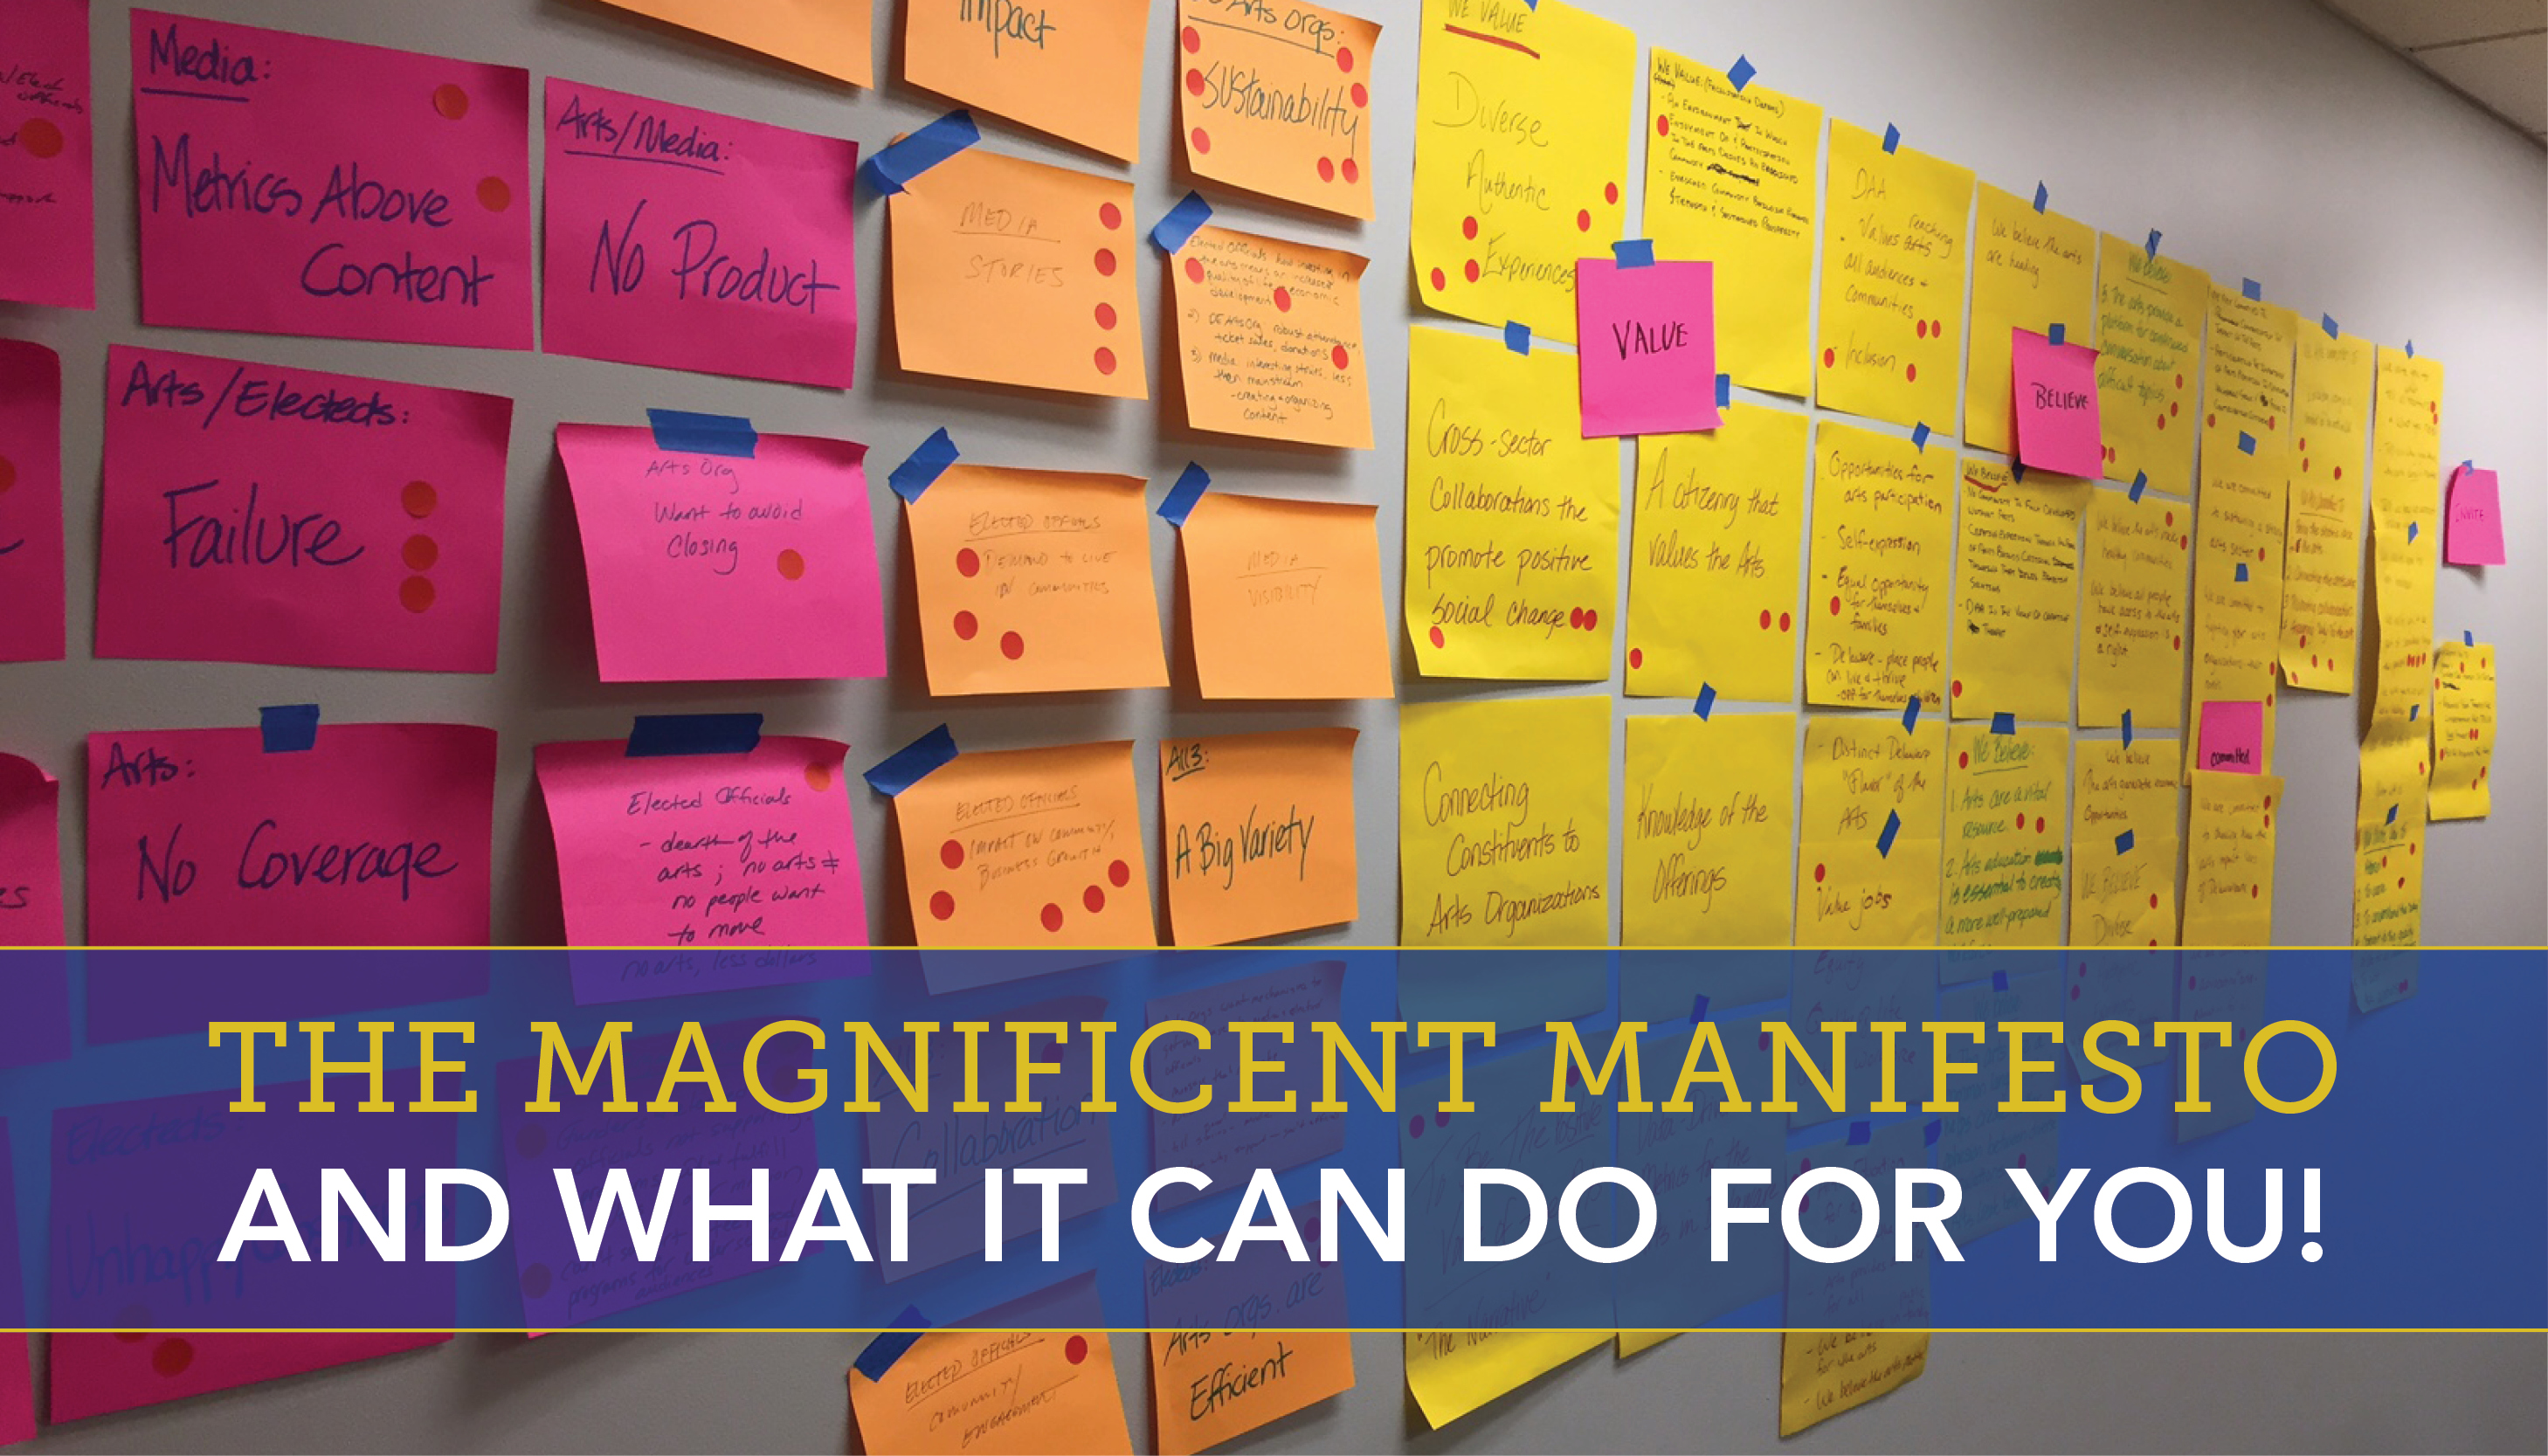 The magnificent manifesto—and what it can do for you!